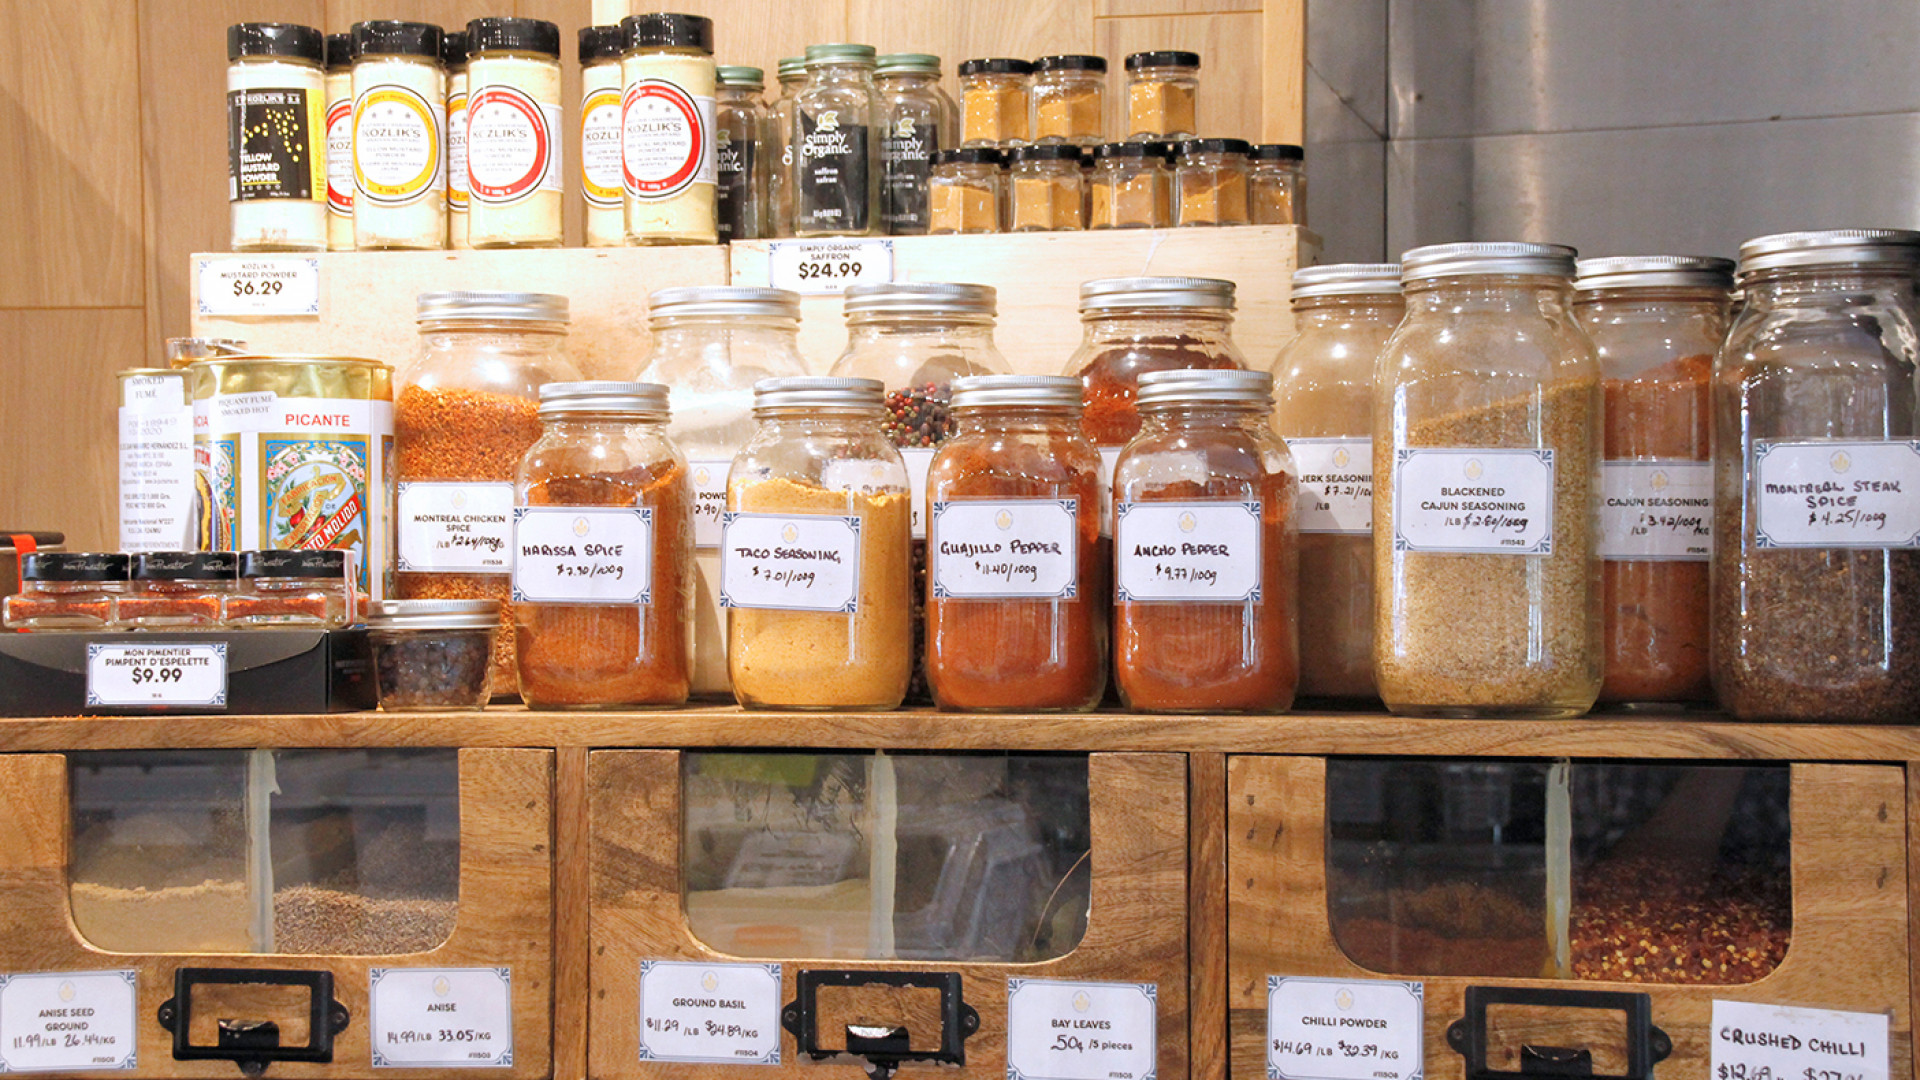 Unboxed Market, Zero waste grocery store and refillery | Spices sold loose from glass jars